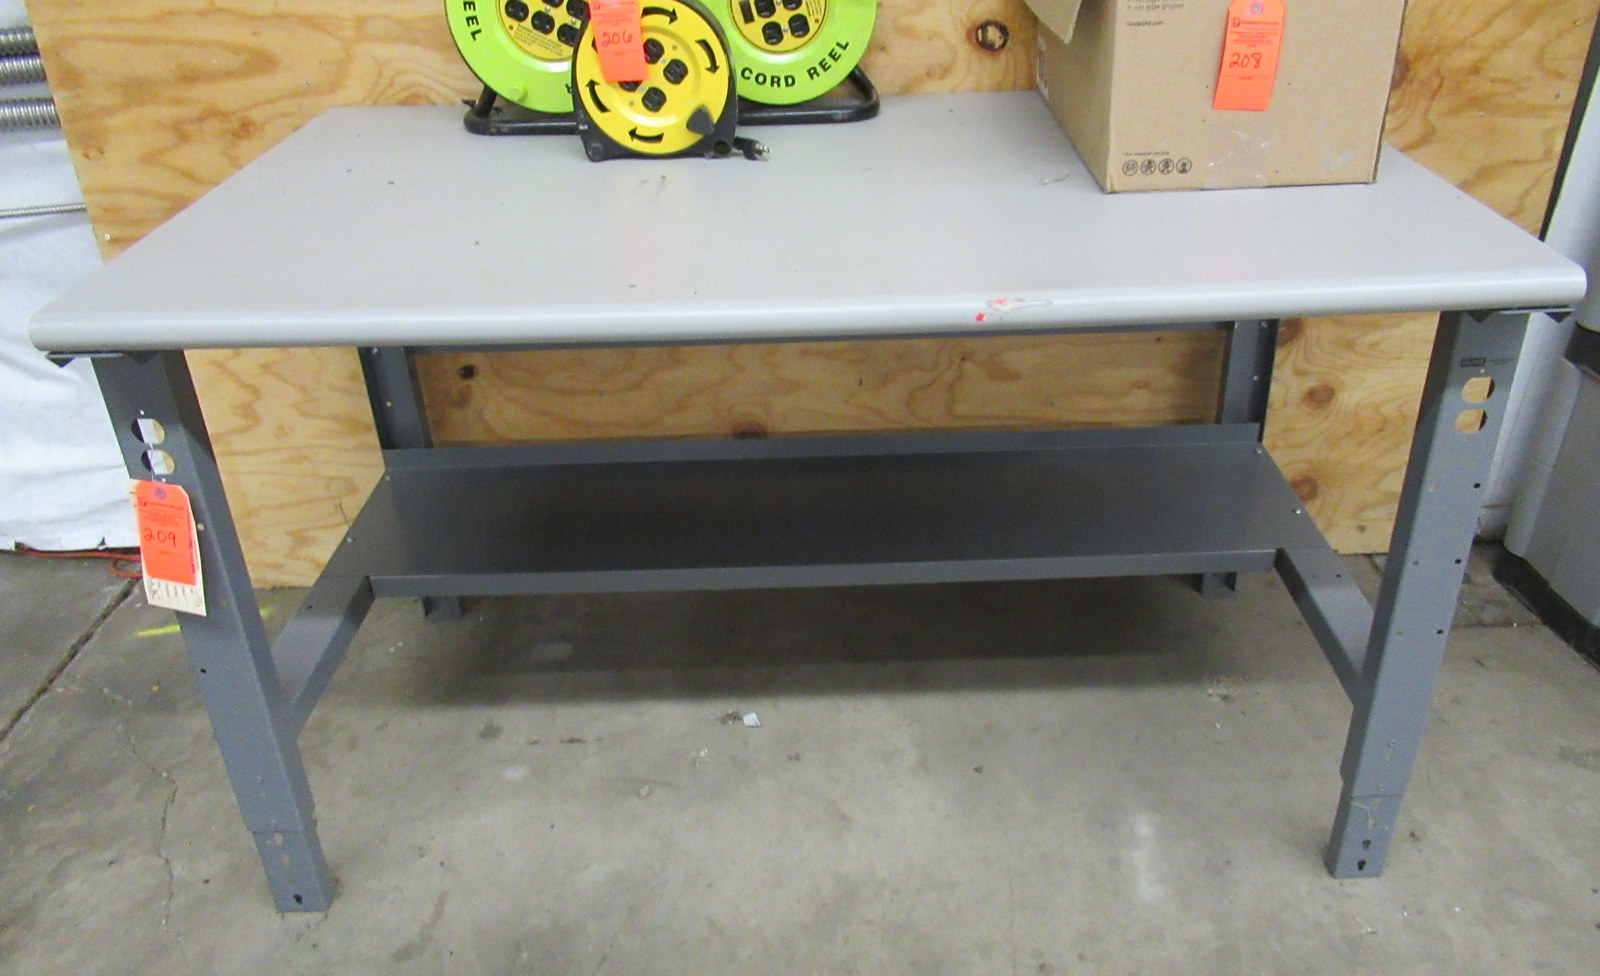 "Lot 209 - Uline H-1136-LAM Packing Shipping Table 60"" x 36"" x 36"" Laminate"